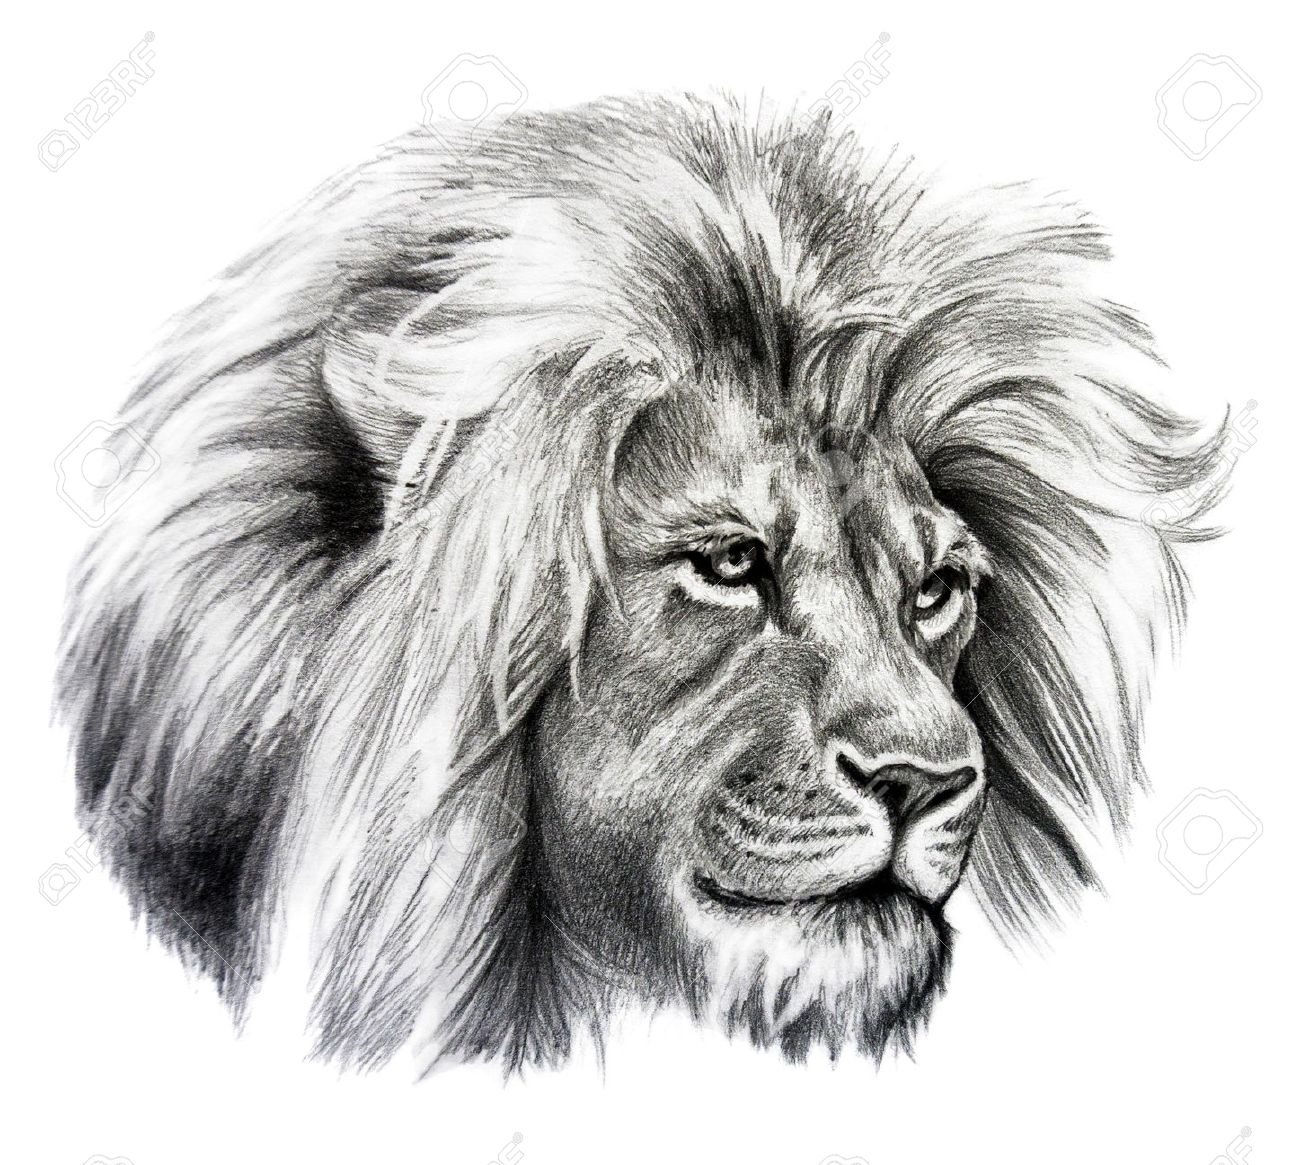 Pencil drawing of lion head isolated on white background stock photo 52914758